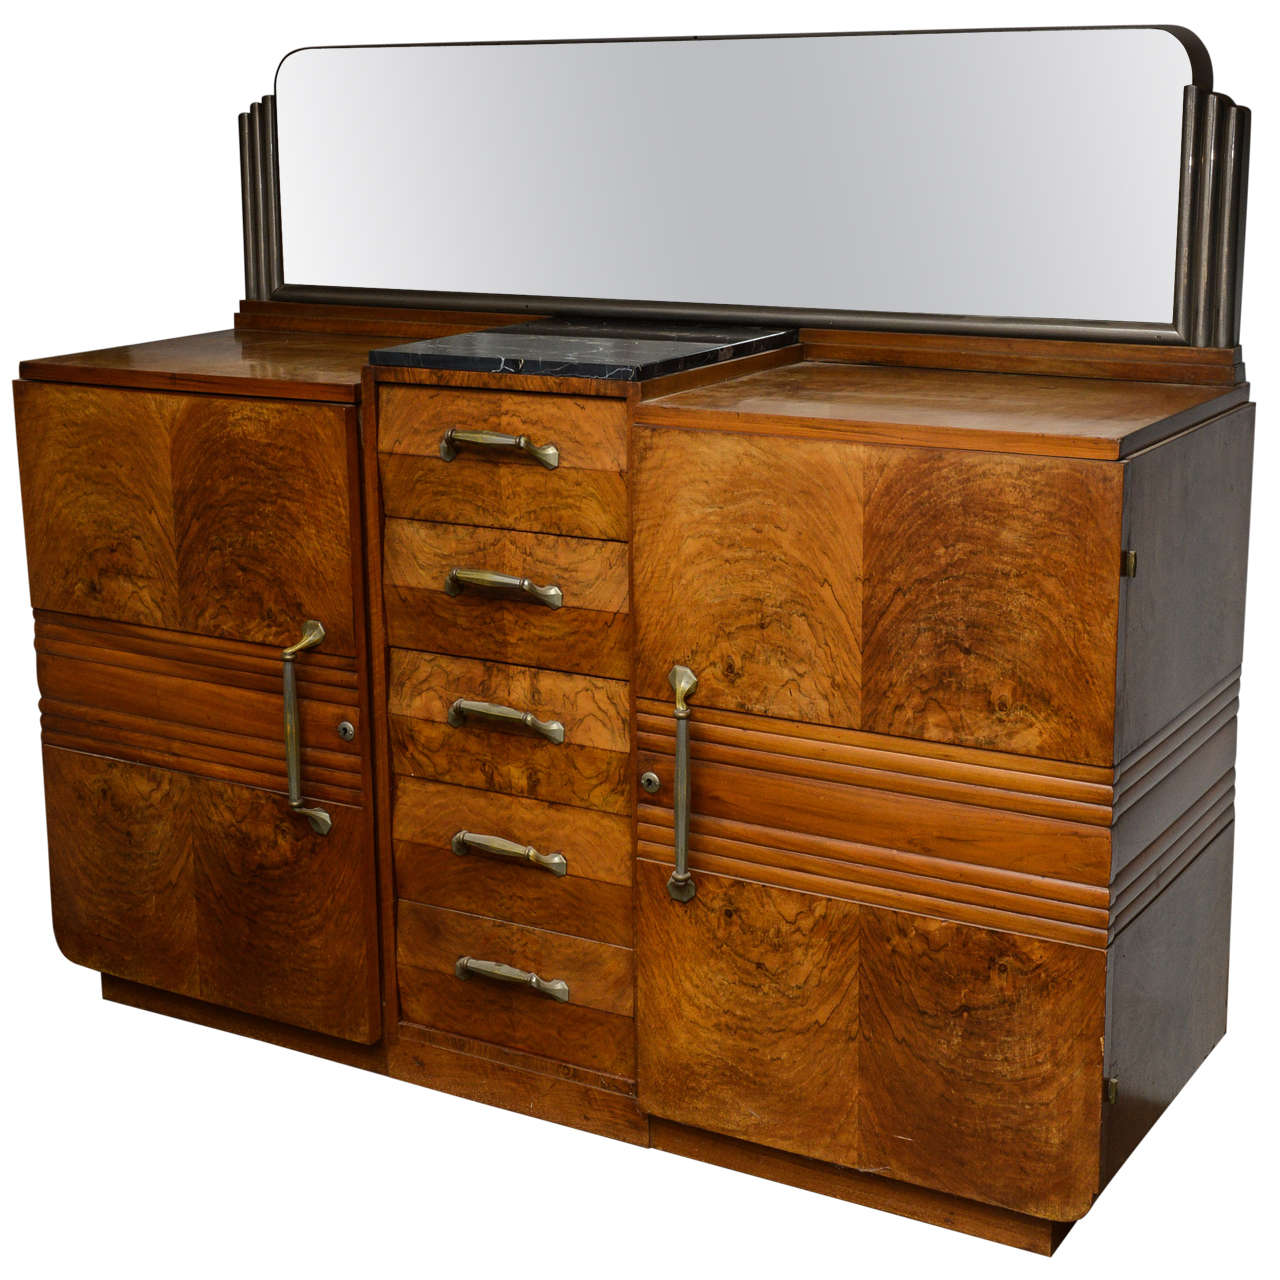 French Art Deco Buffet in Solid Walnut For Sale at 1stdibs